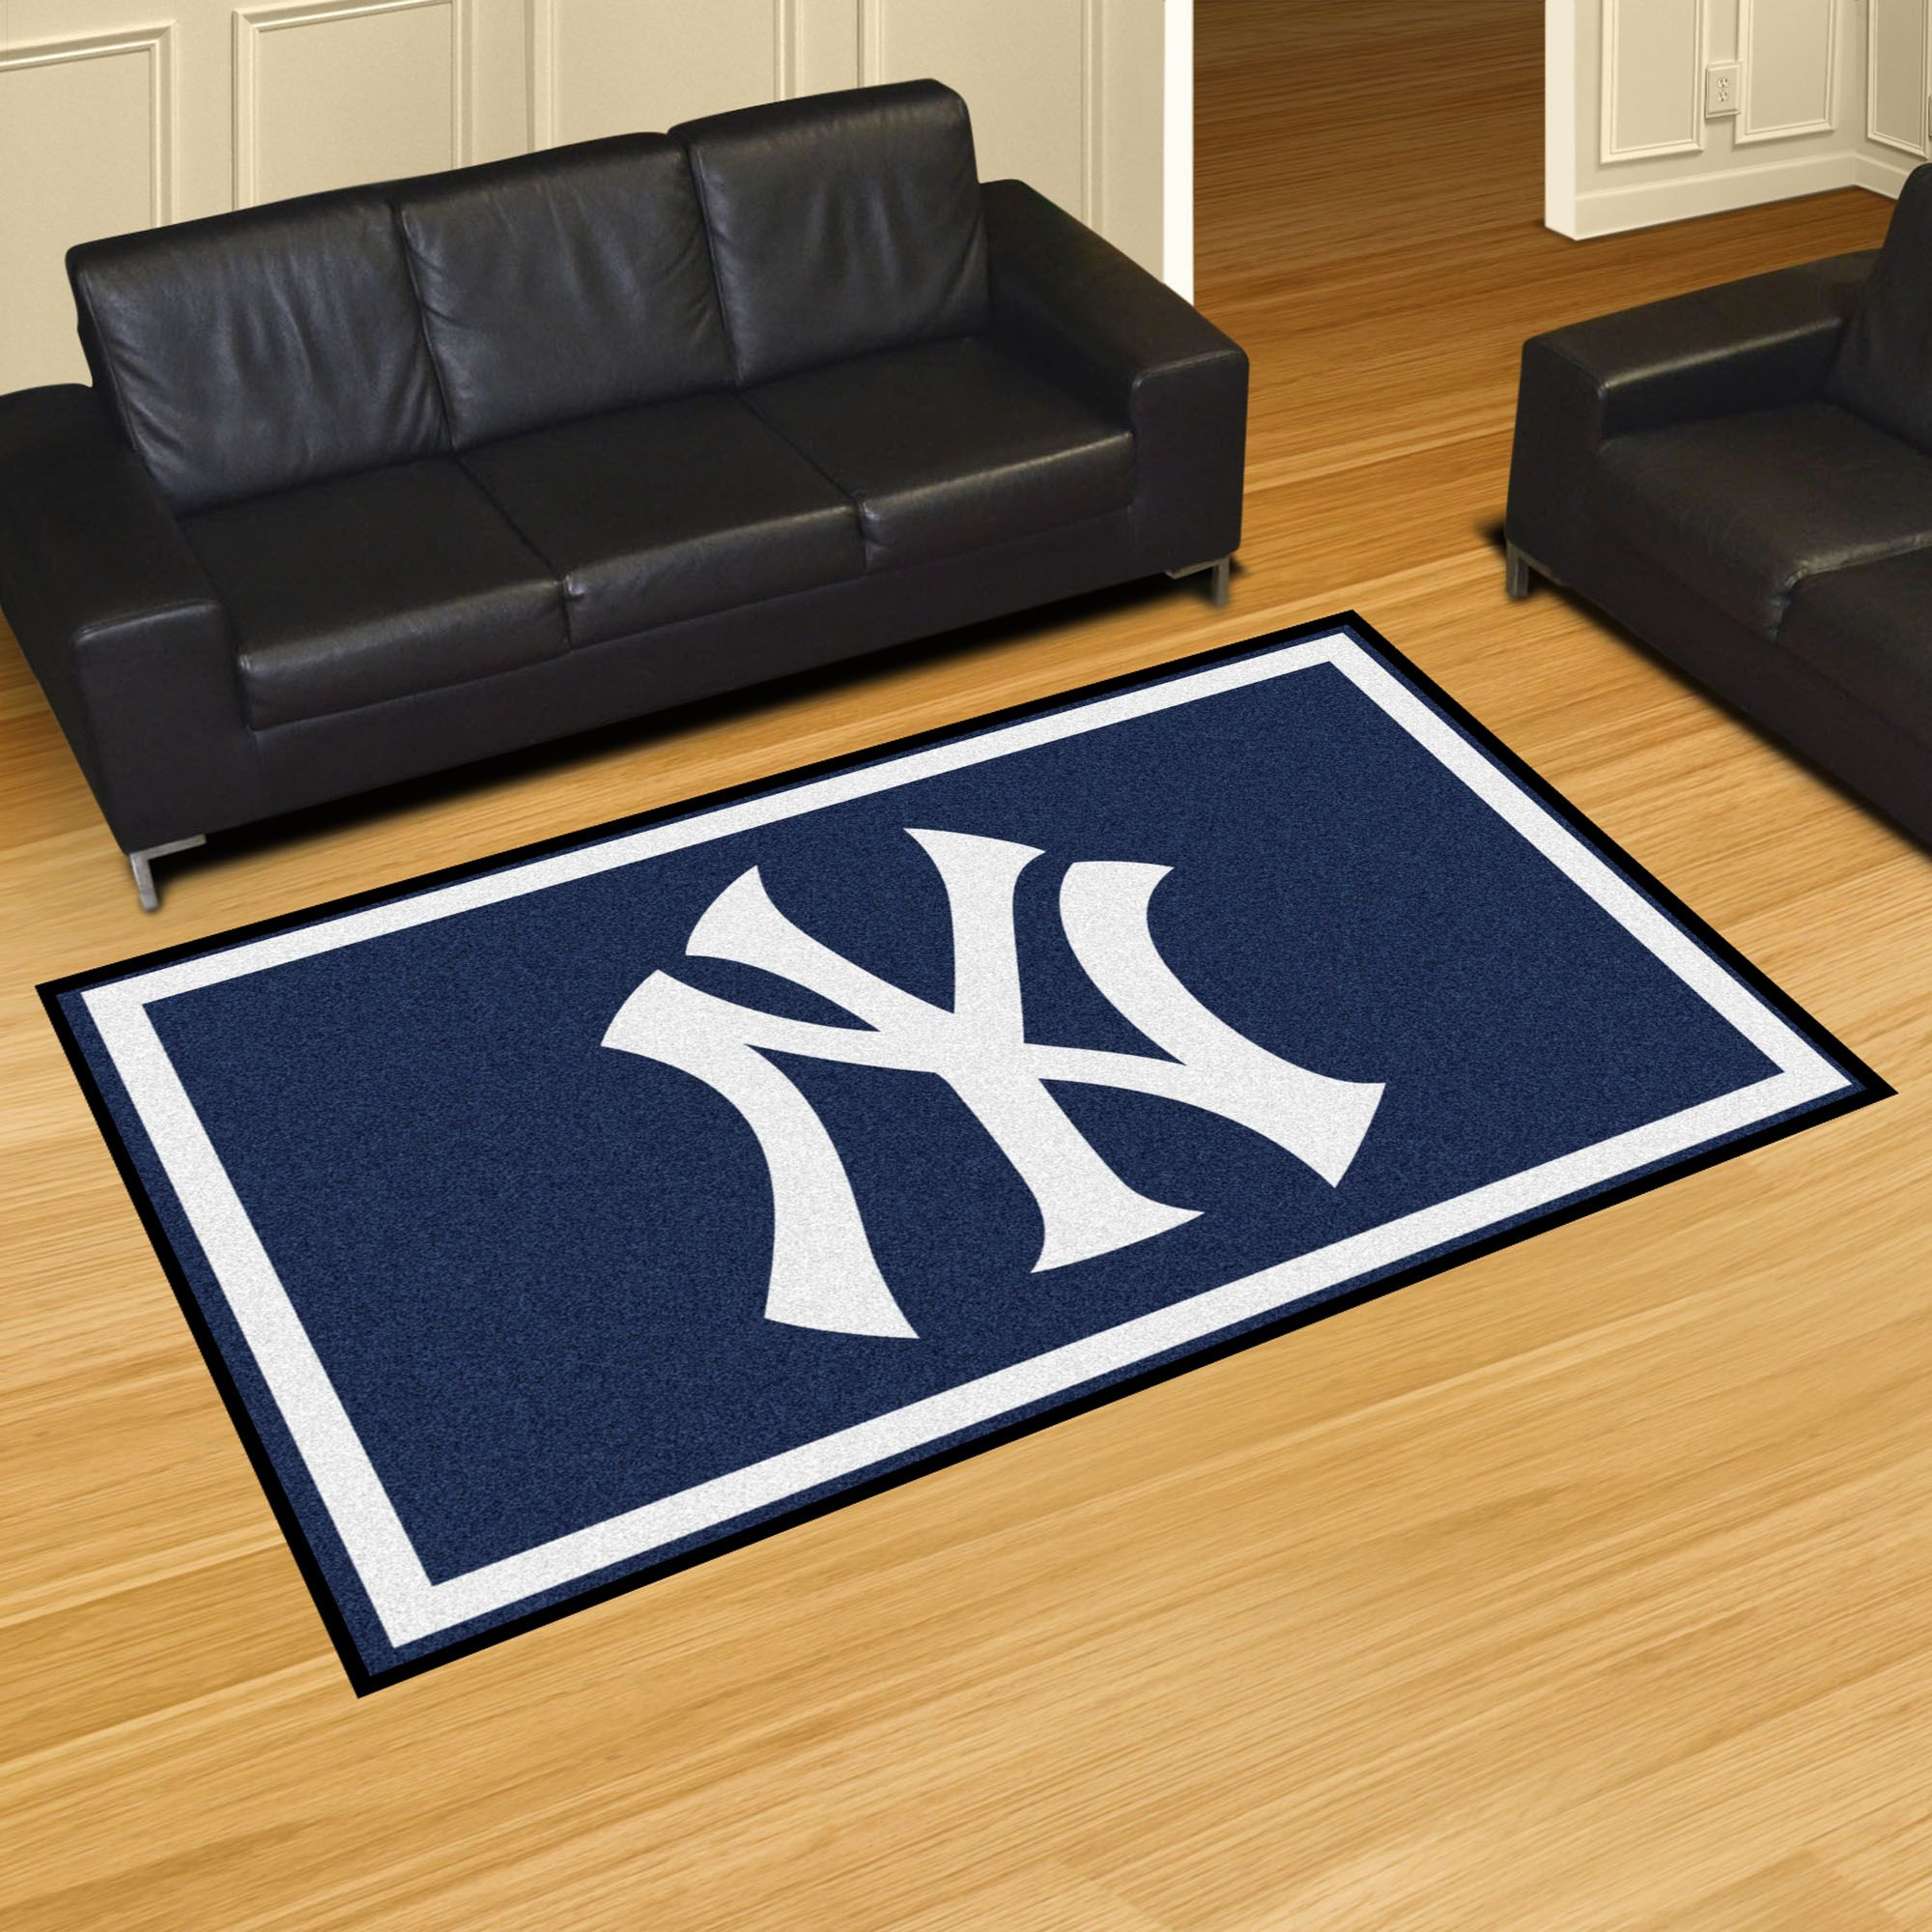 New York Yankees 5x8 Rug